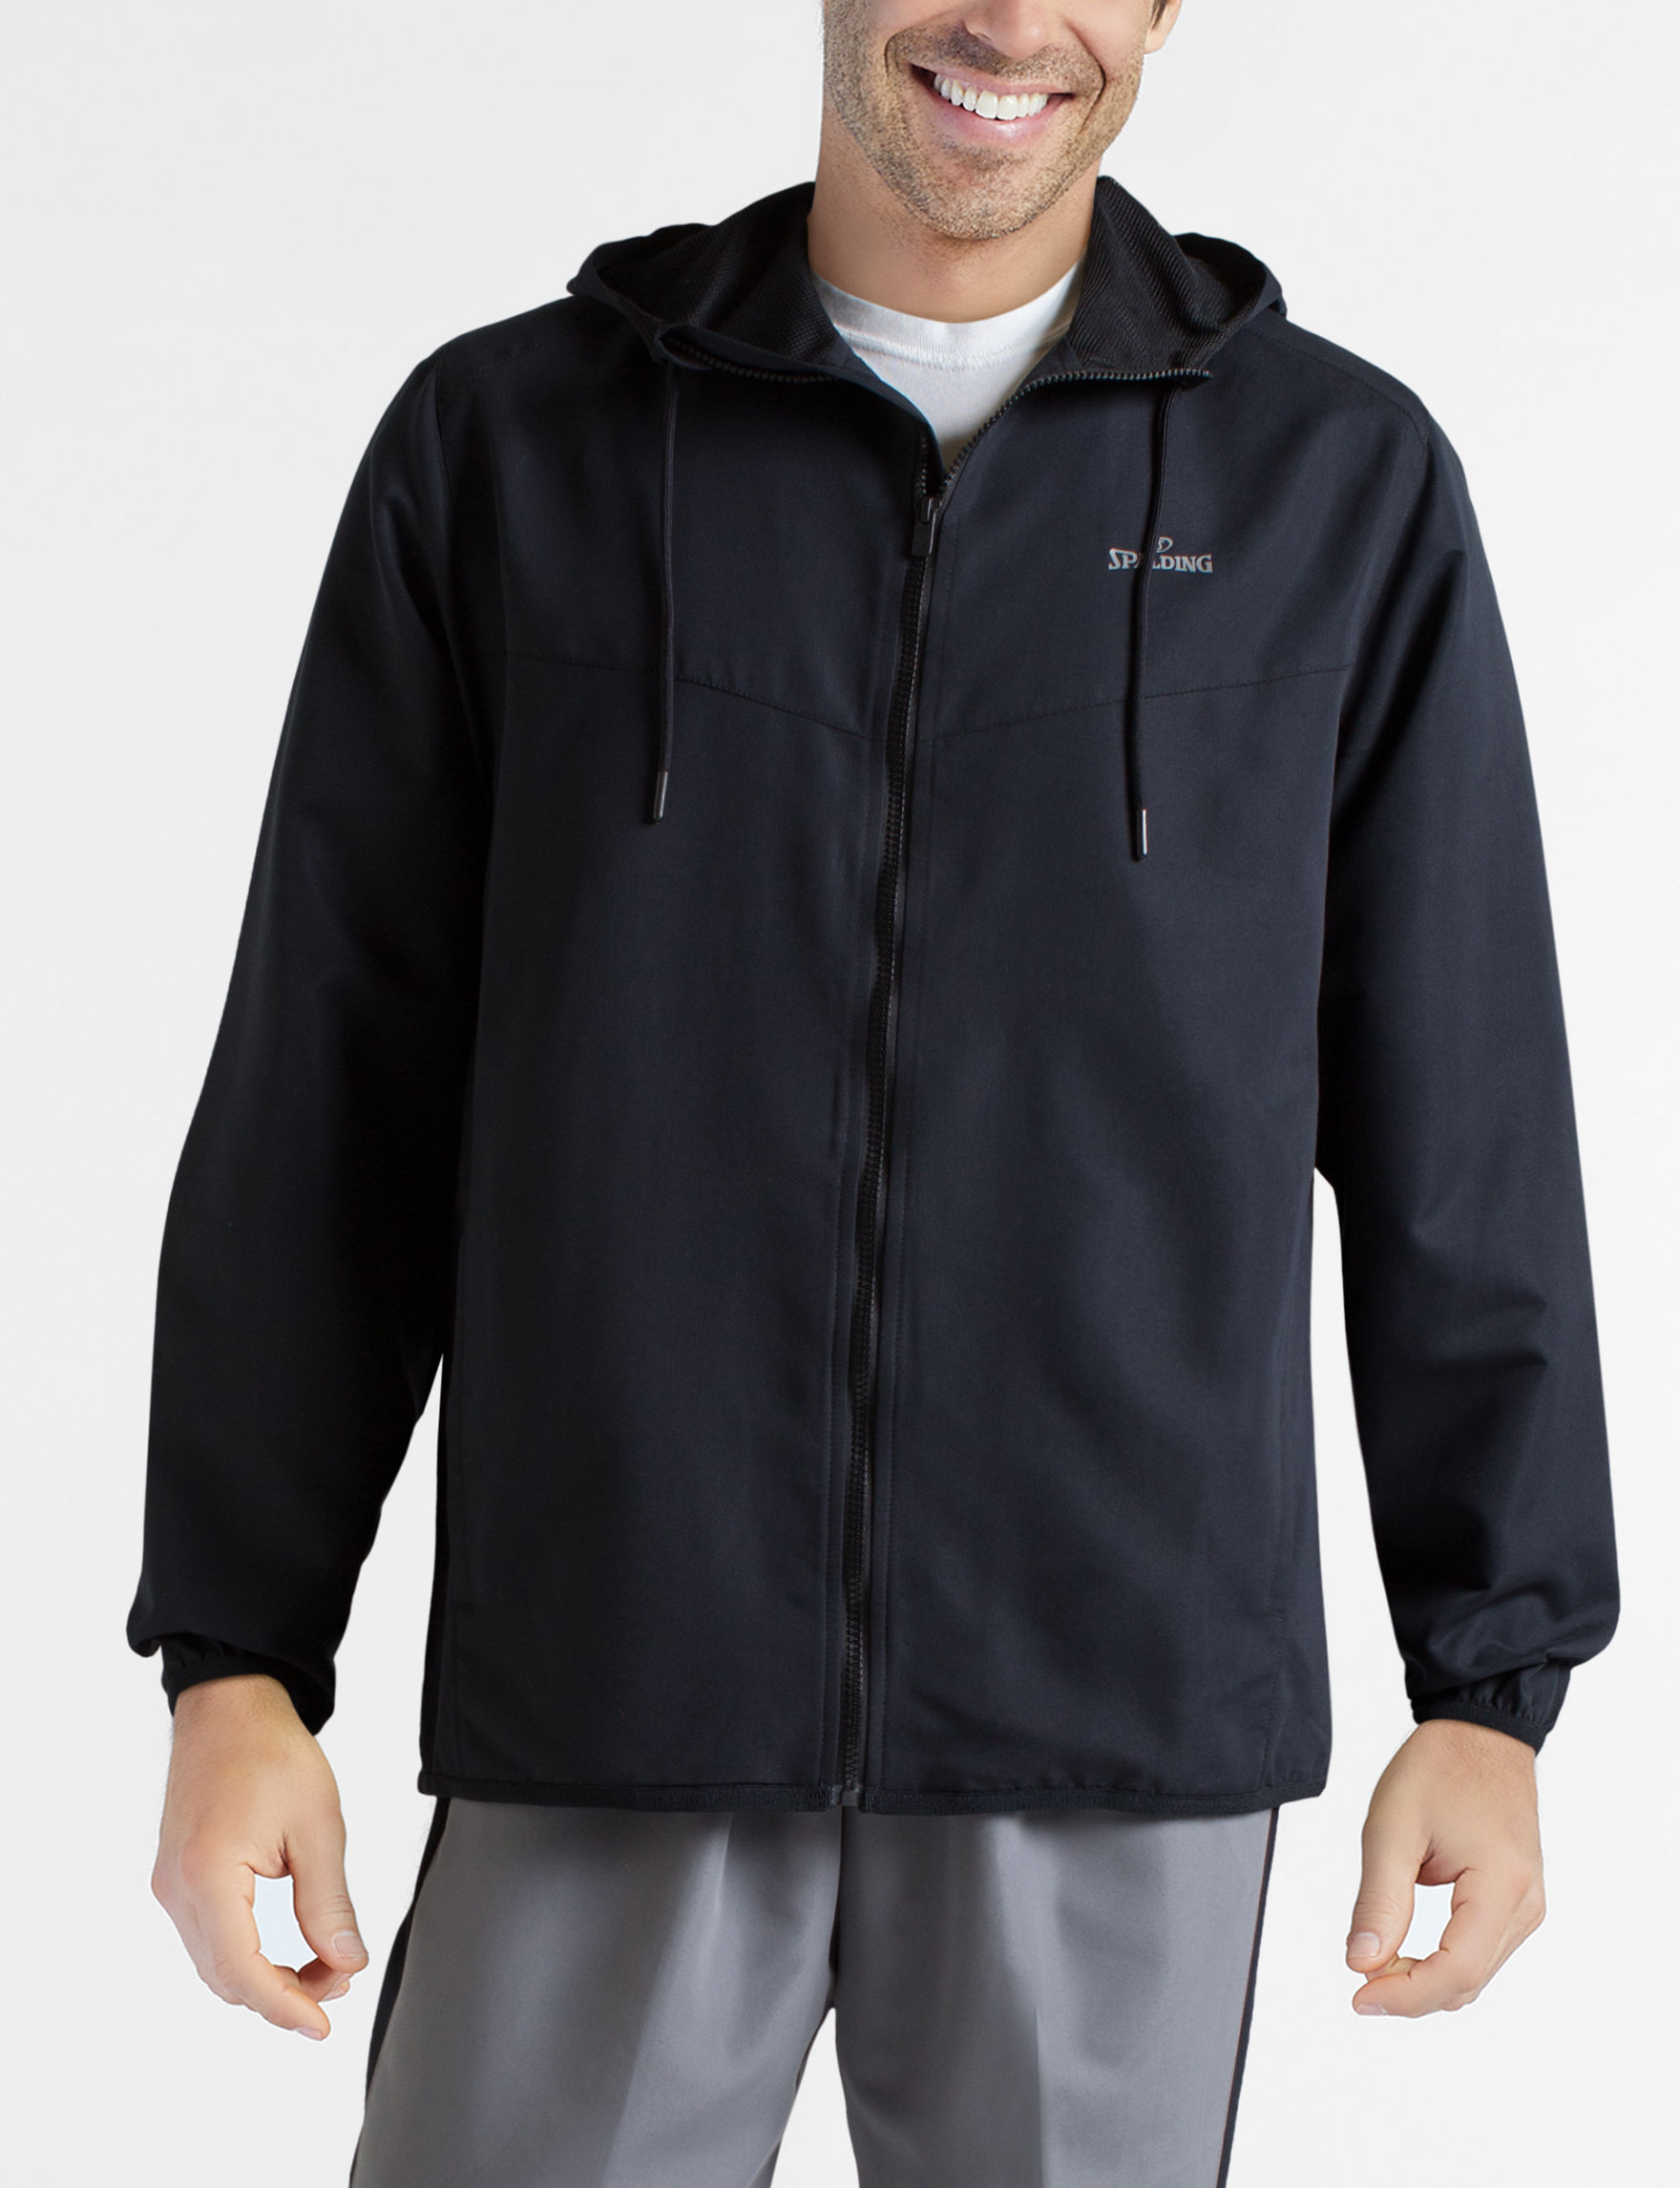 Spalding Black Zip-Ups